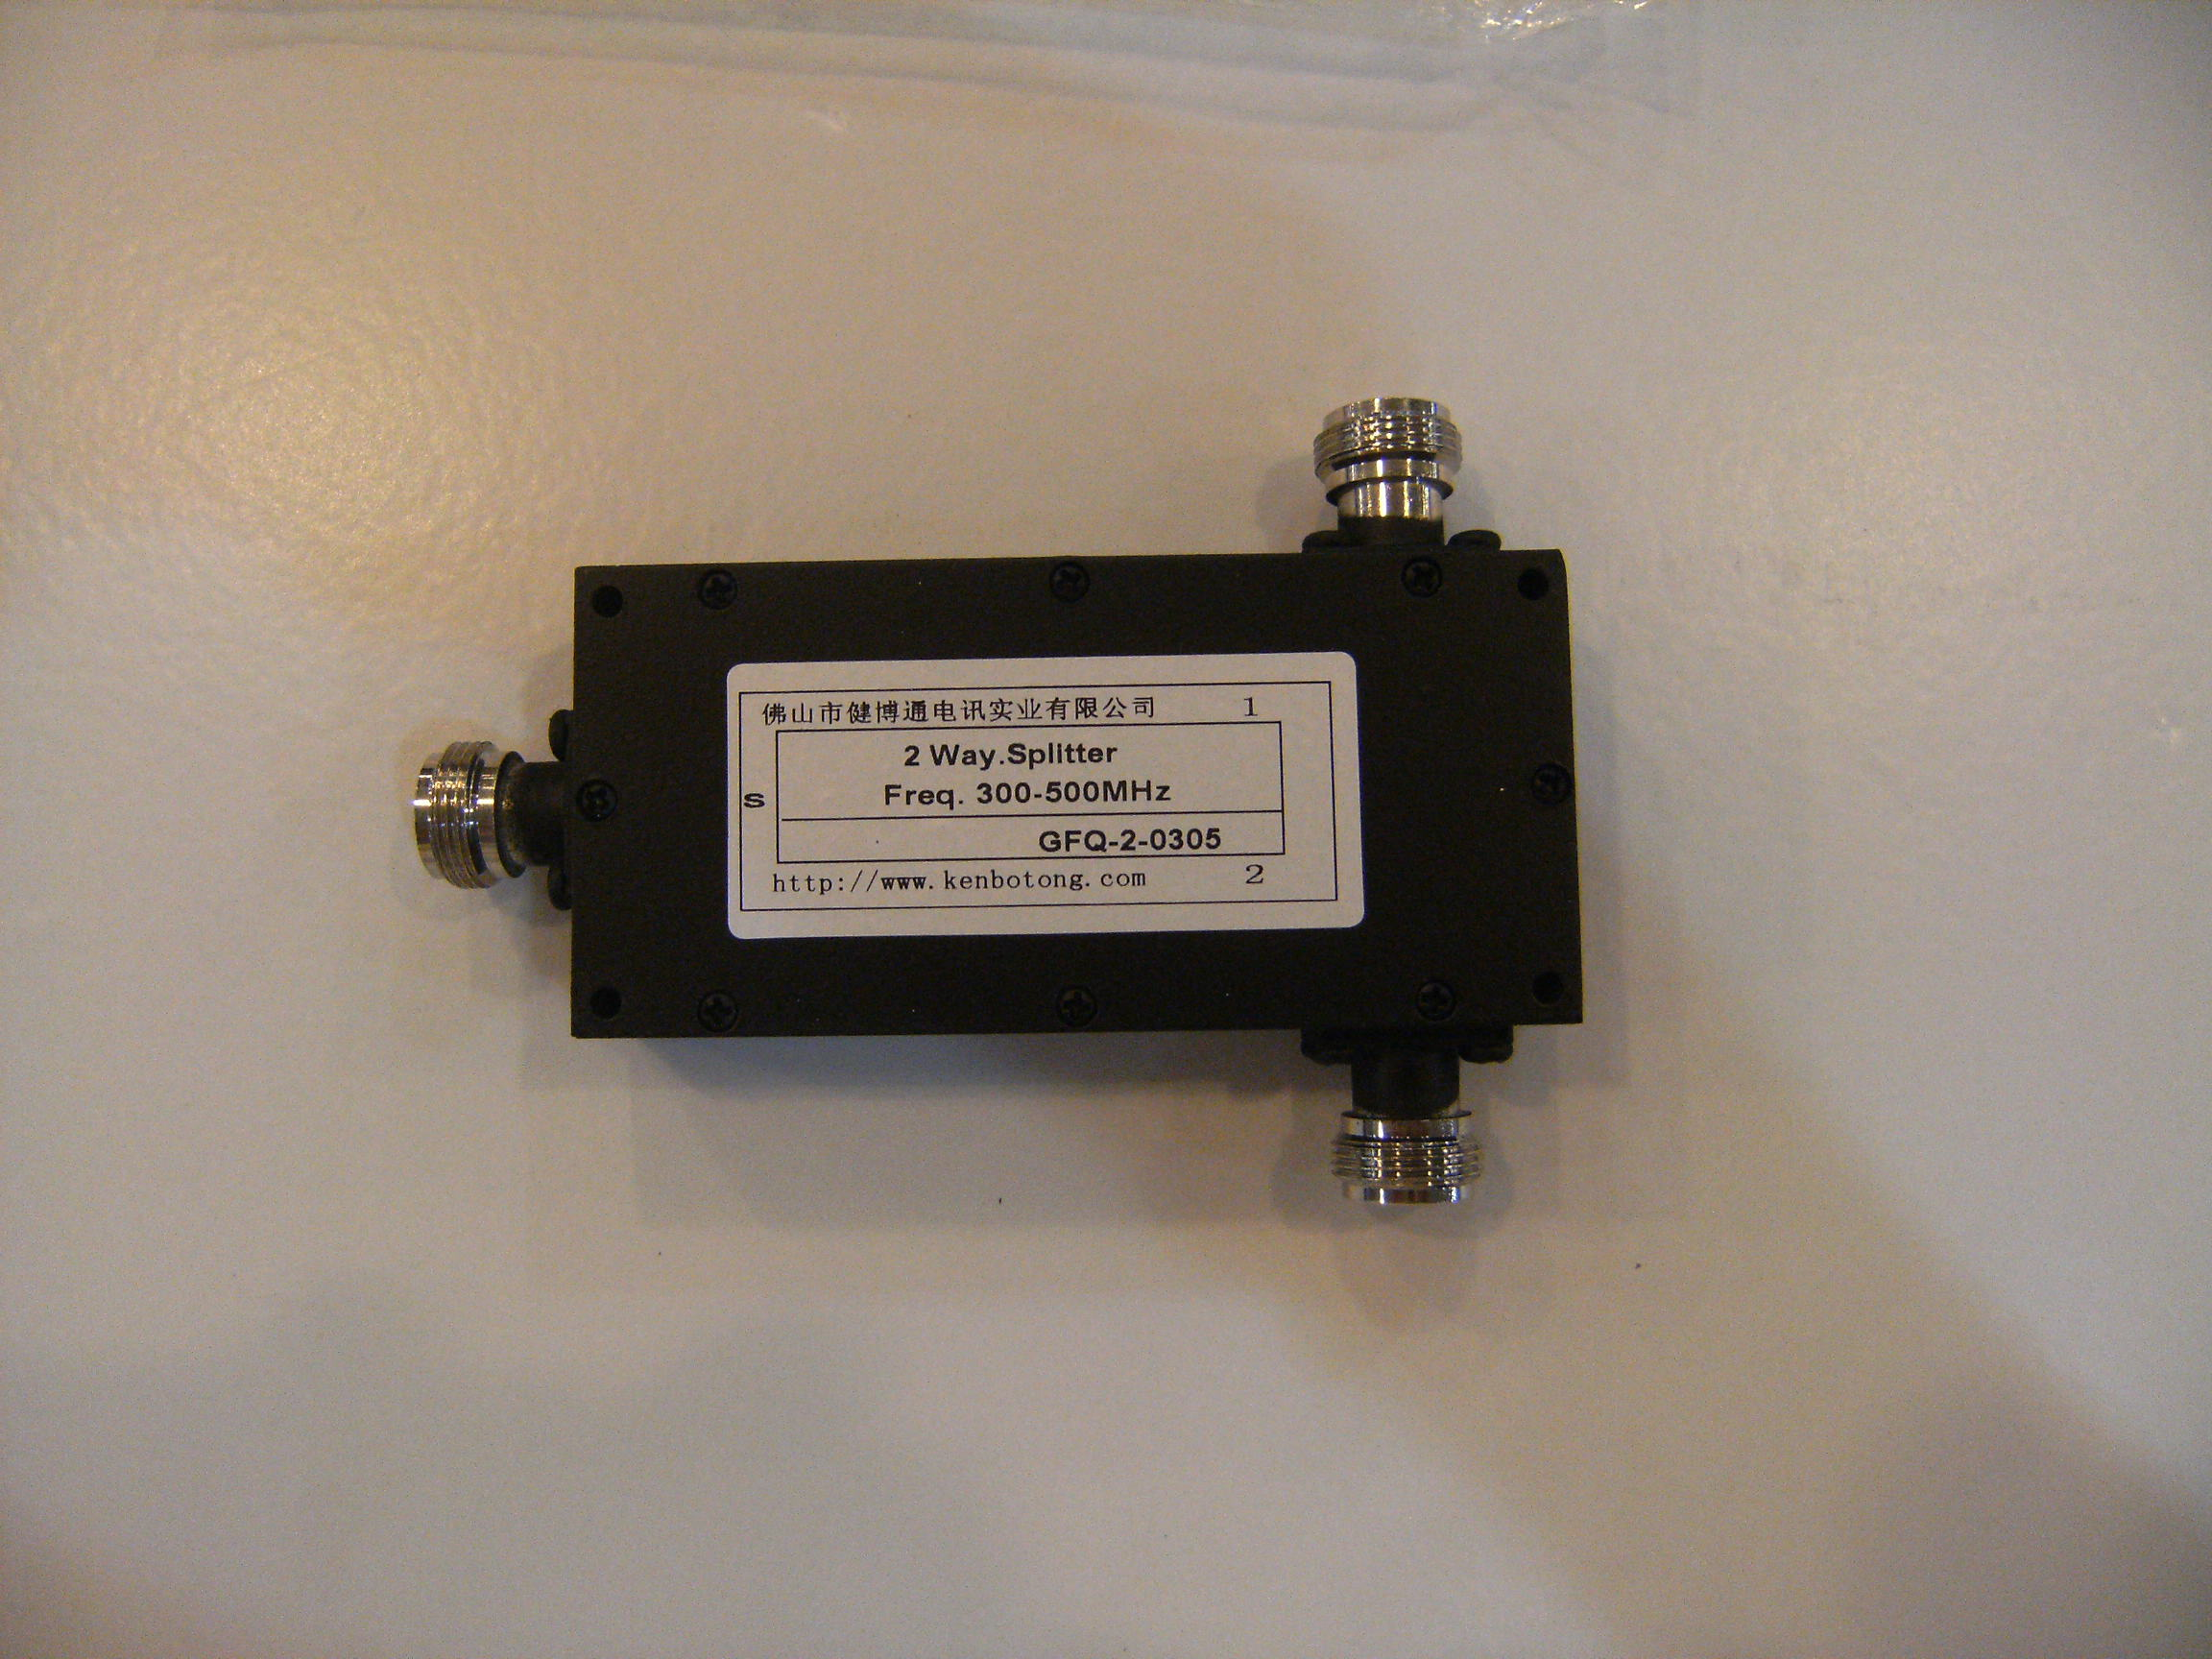 400mhz/433mhz/460 Microstrip Two Power Divider Gfq-2-0305 Candid 350-500mhz